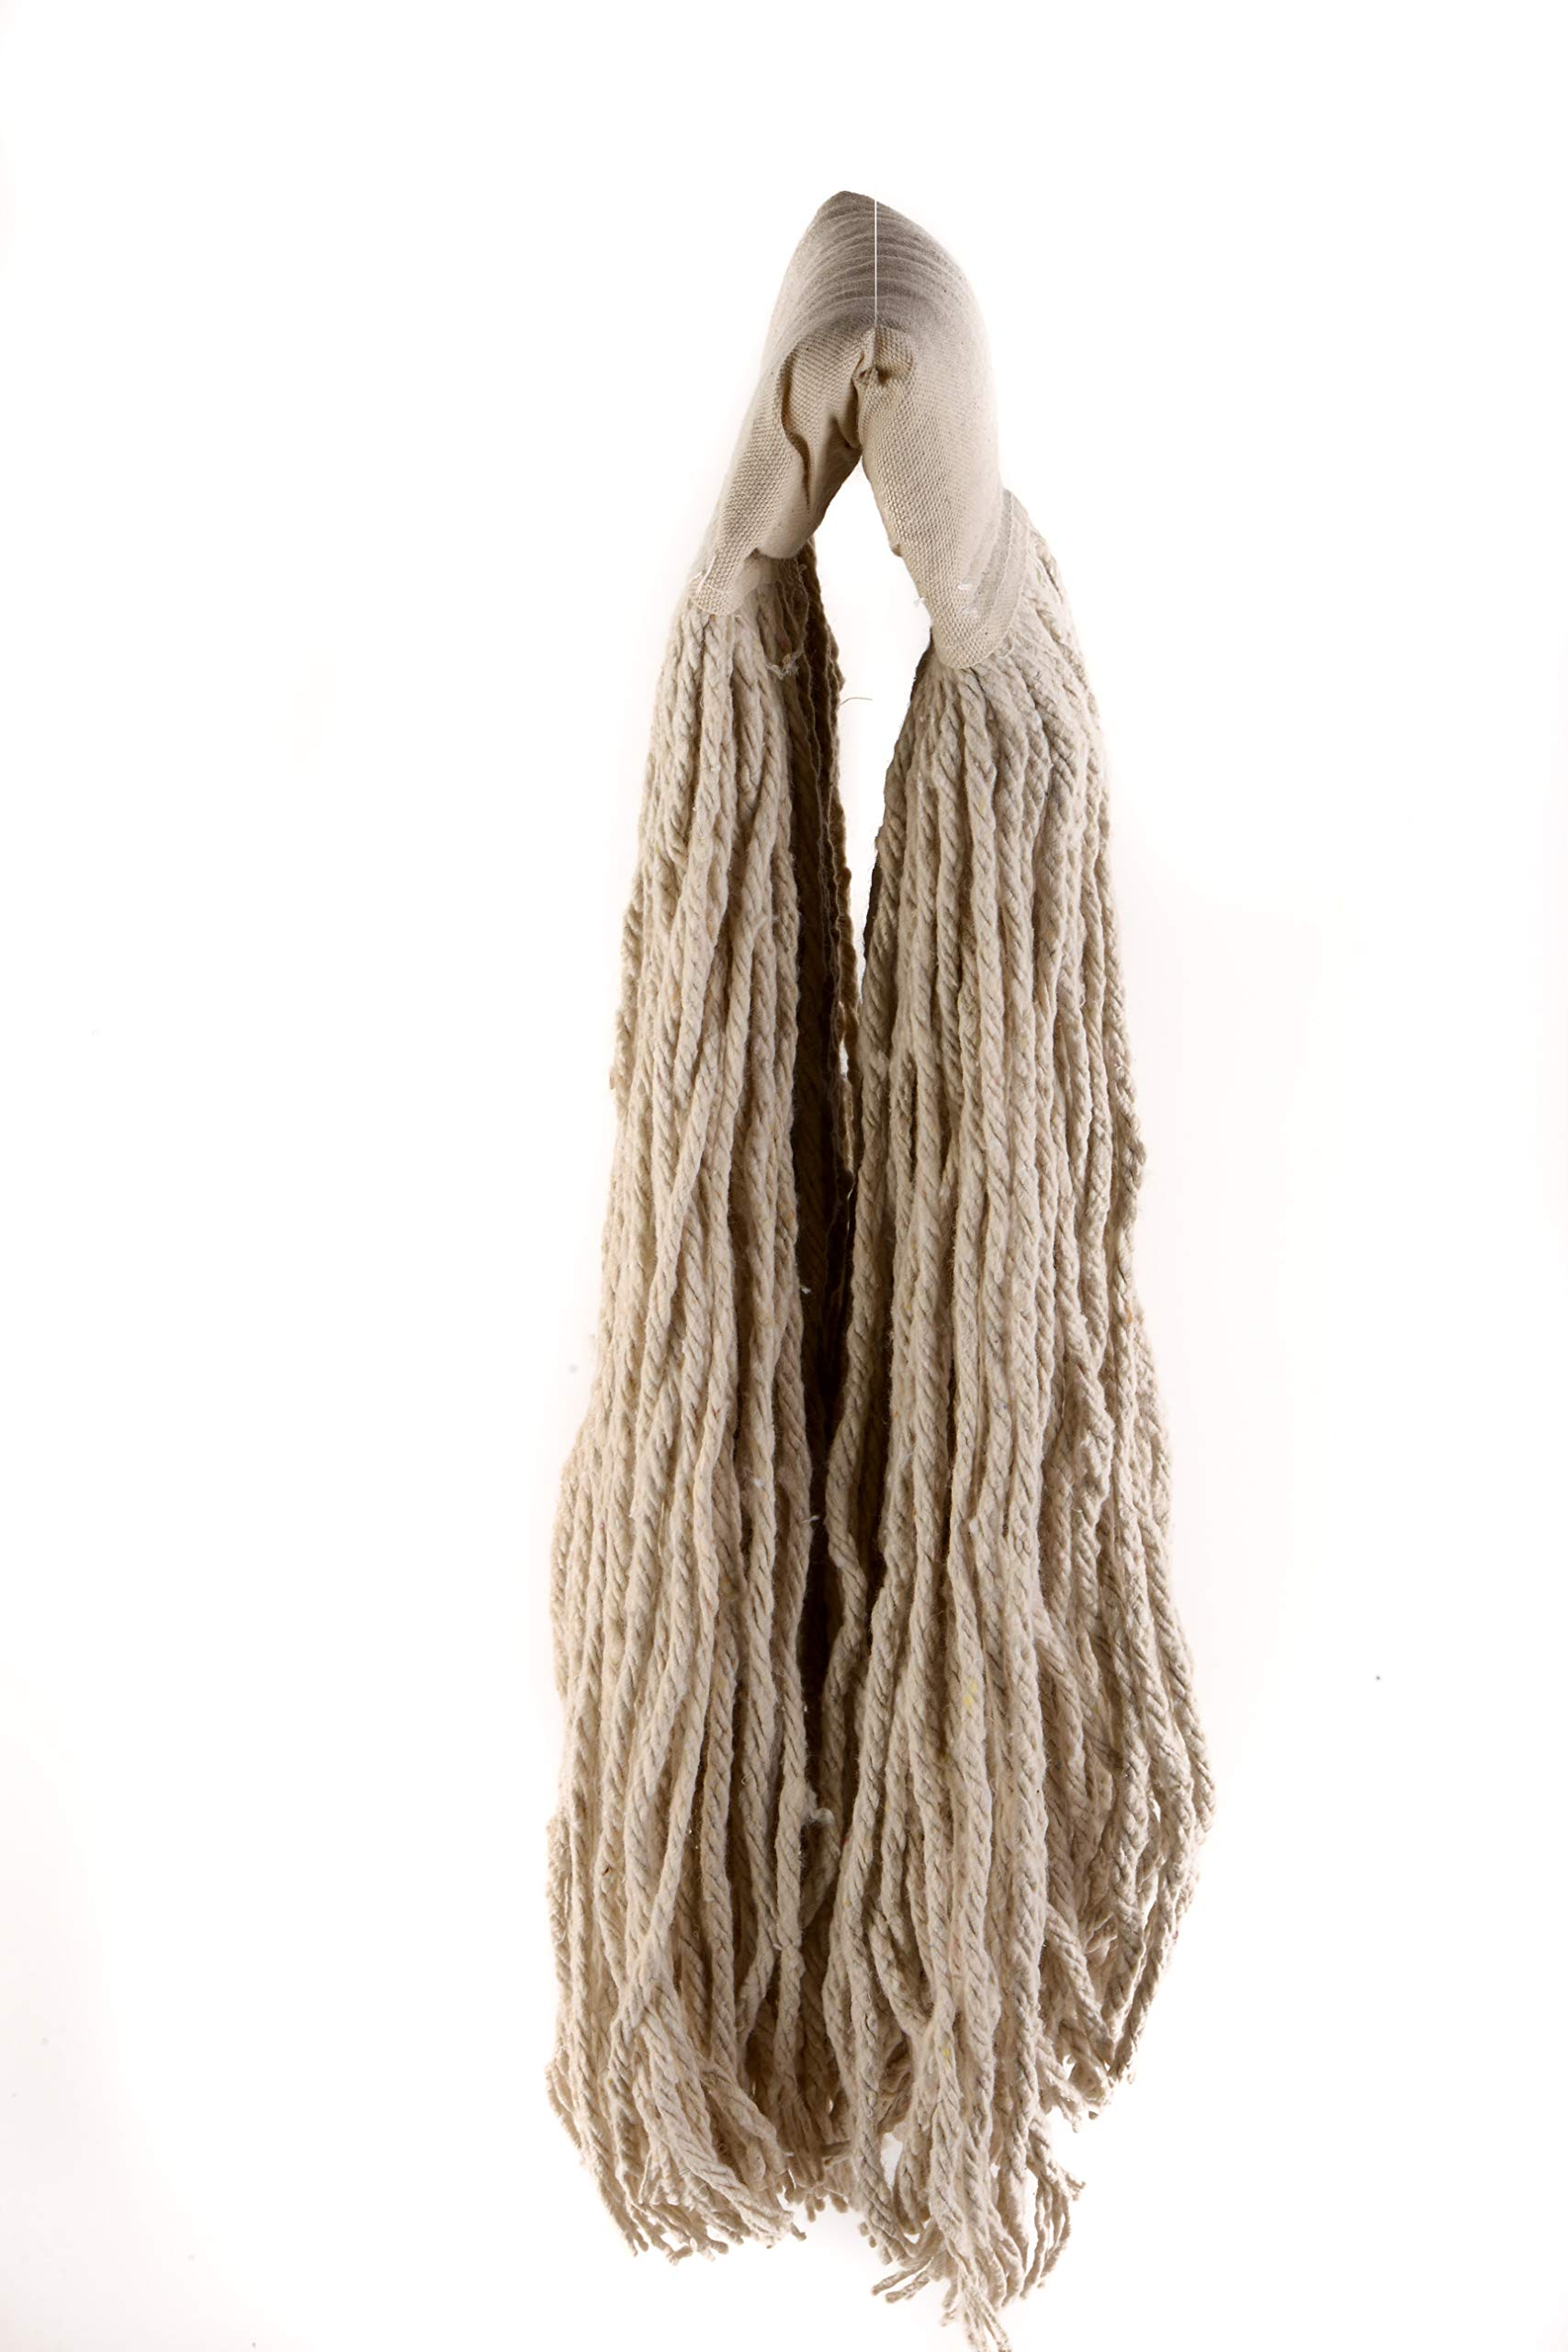 [60 PACK] EcoQuality Commercial Mop Head #32, 32oz Mop Head Blended Yarn - X-Large For Commercial And Industrial Use | Cotton Mop Head Replacement | 32 Ounce (White)